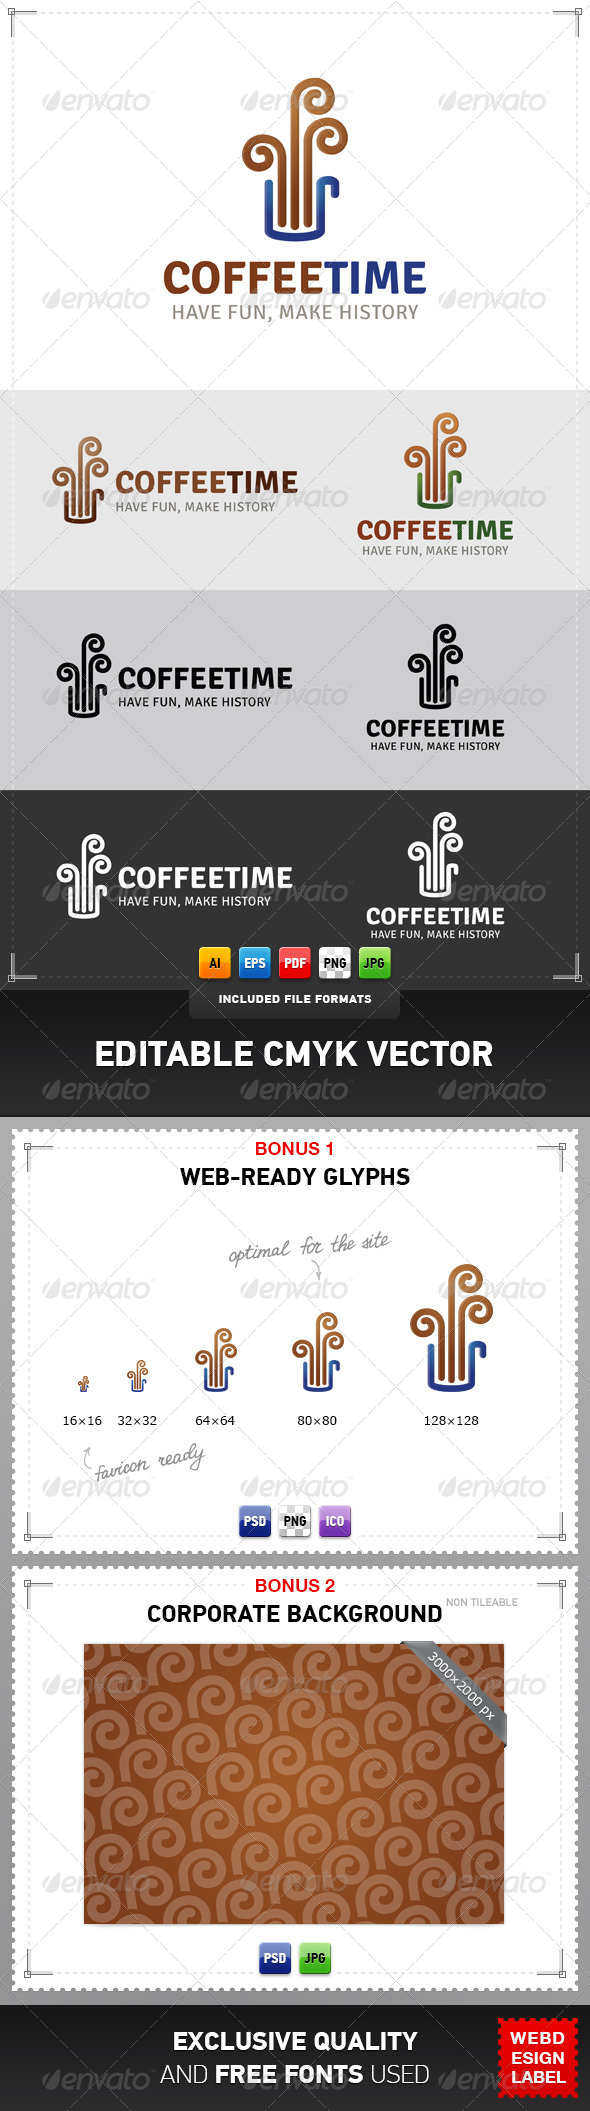 GraphicRiver Coffee Time Logo 5006070